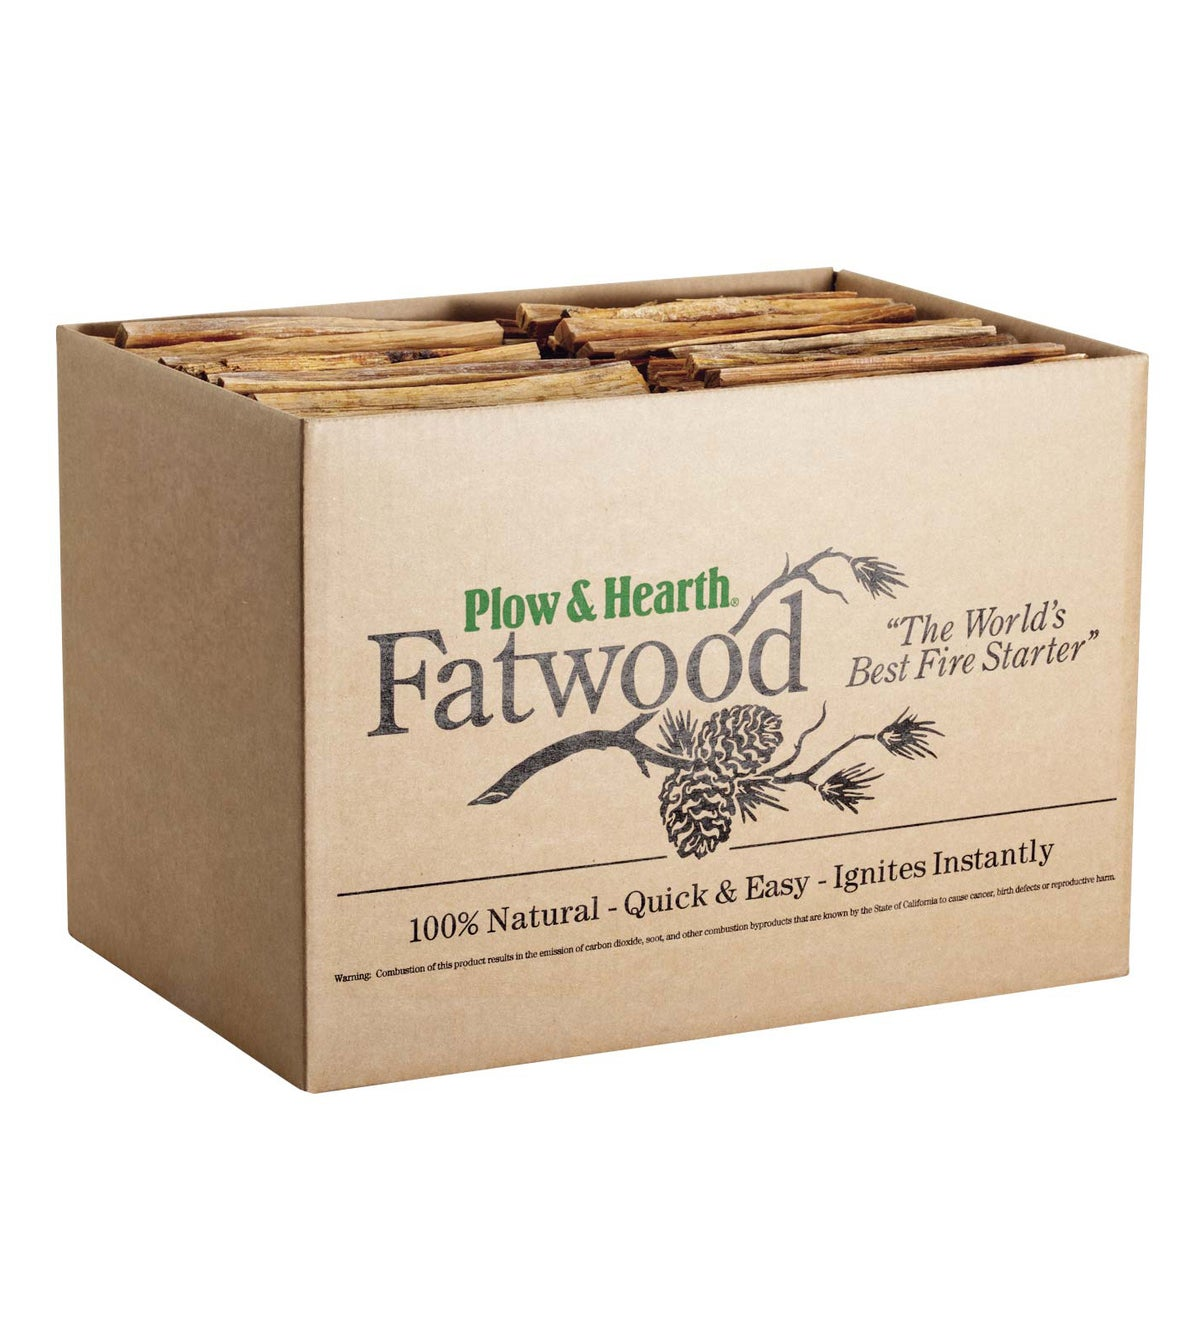 Fatwood Fire-Starter, 30 lb. Box